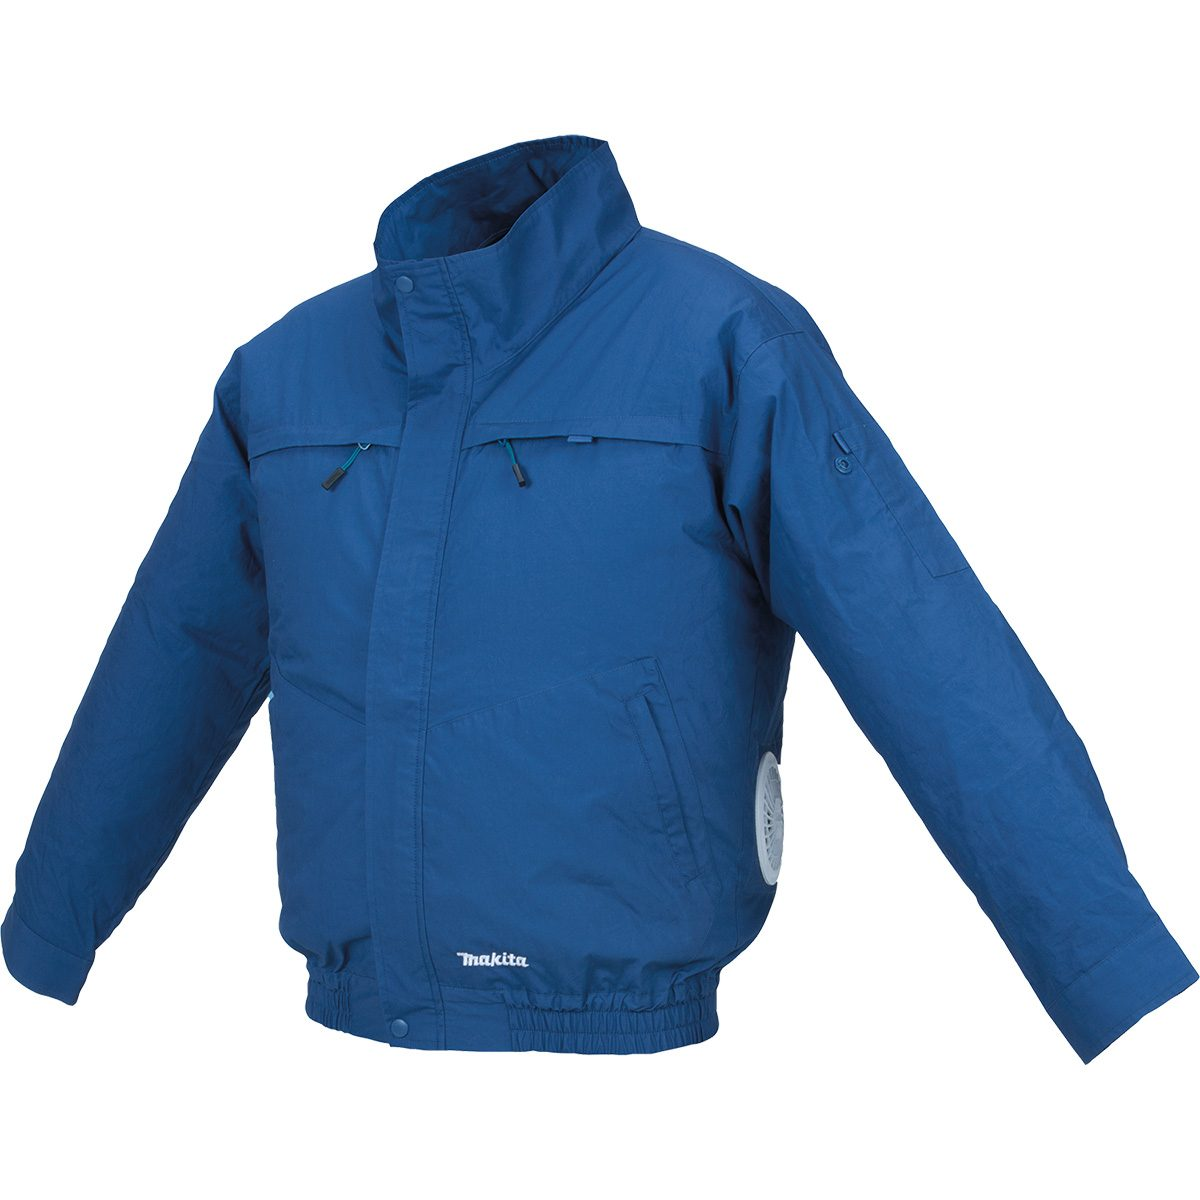 Blue cooling jacket from Makita | Construction Pro Tips